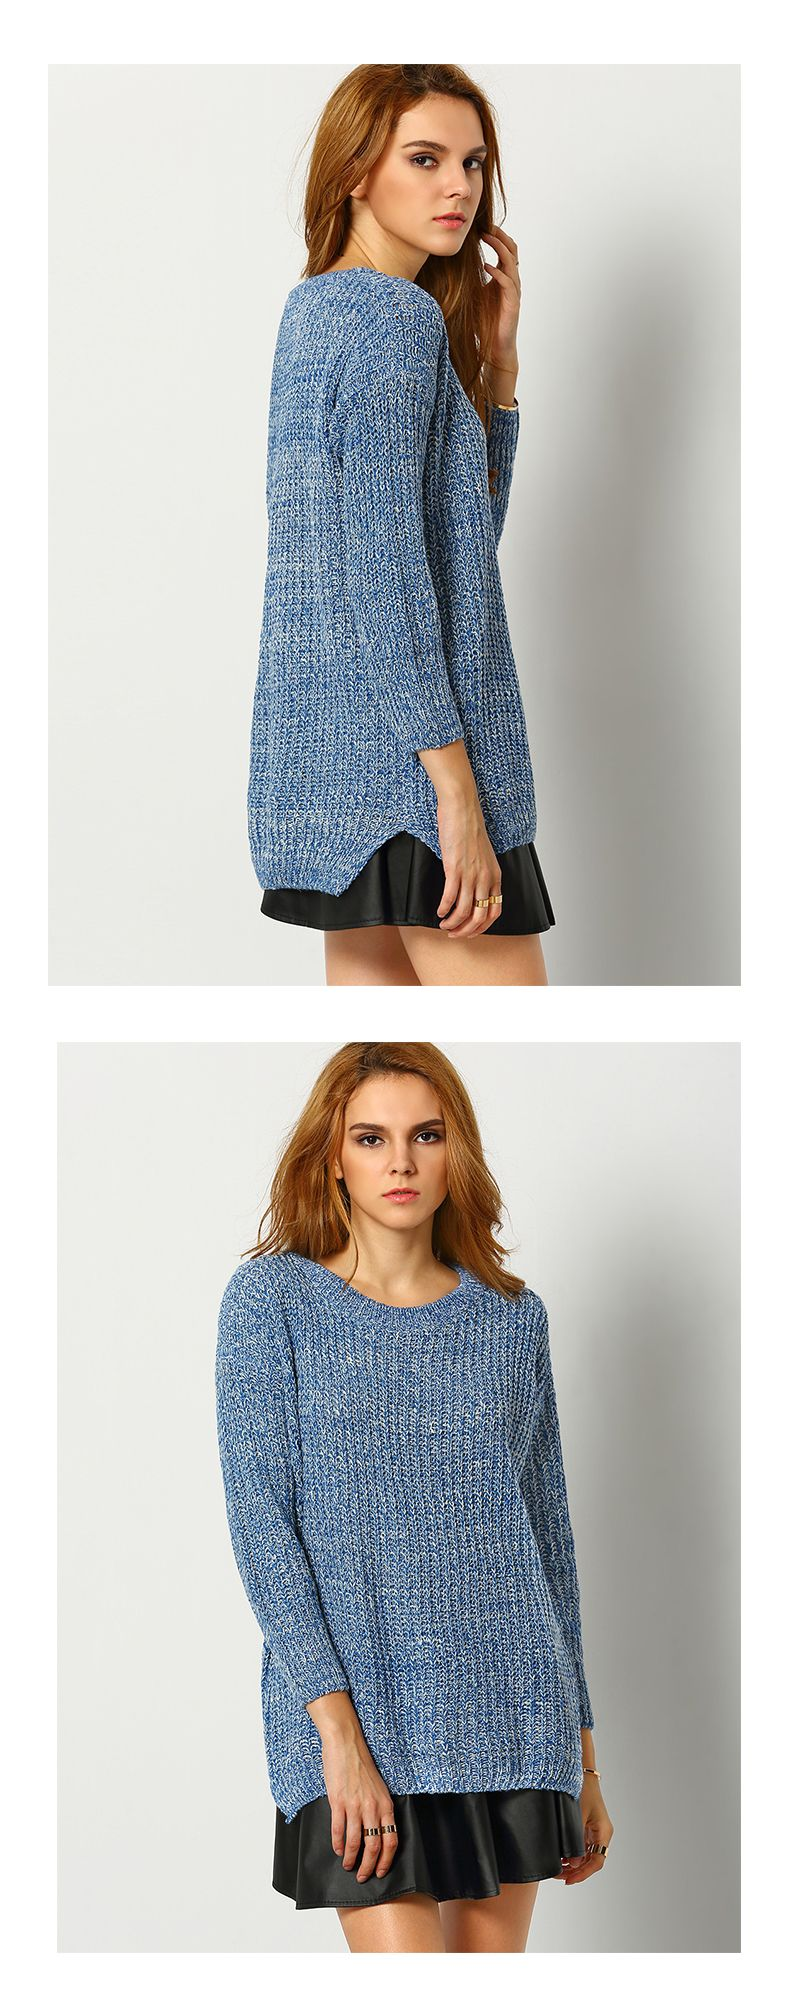 Sweater weather again ! Sweater fashion can not fade never ! More fall sweater ,knit sweater and ladies sweater here at shein .com .Blue Long Sleeve Dipped Hem Loose Sweater.